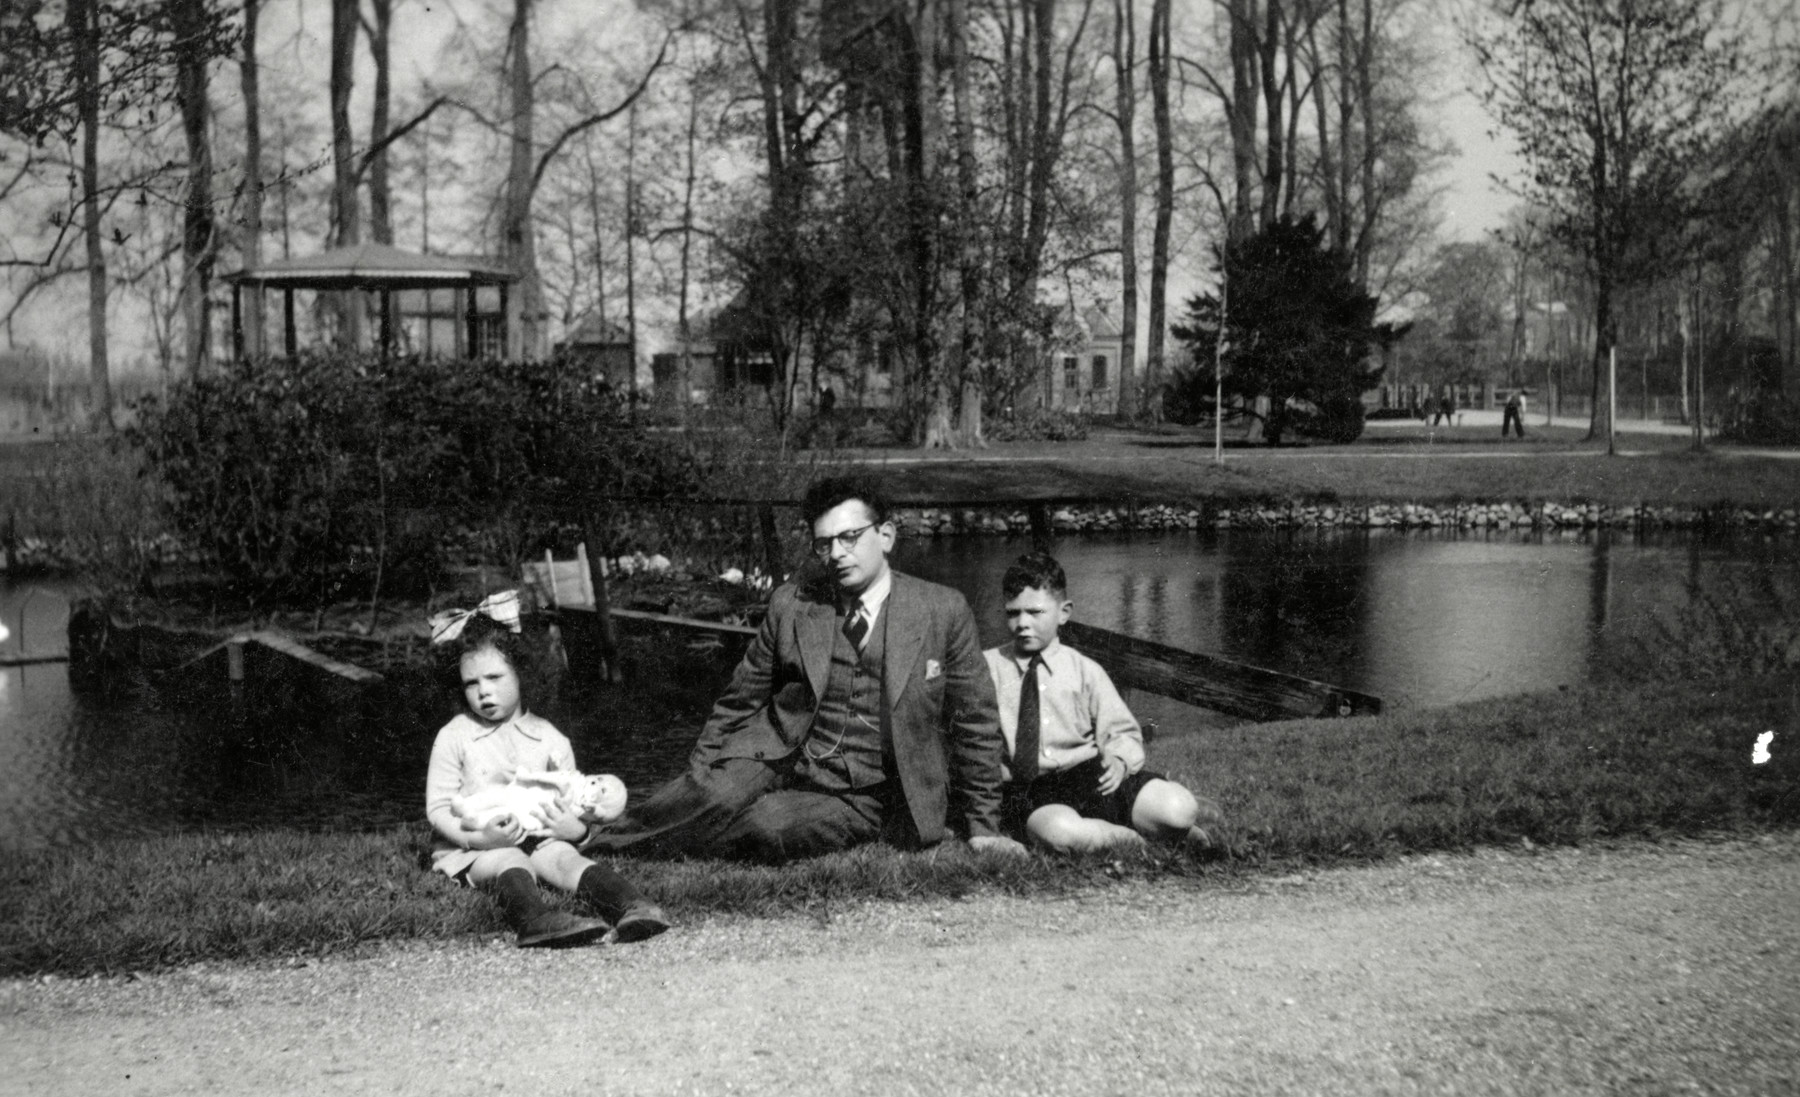 Maurits Drukker poses with his children Elly and Alfred in a park in Winschoten.